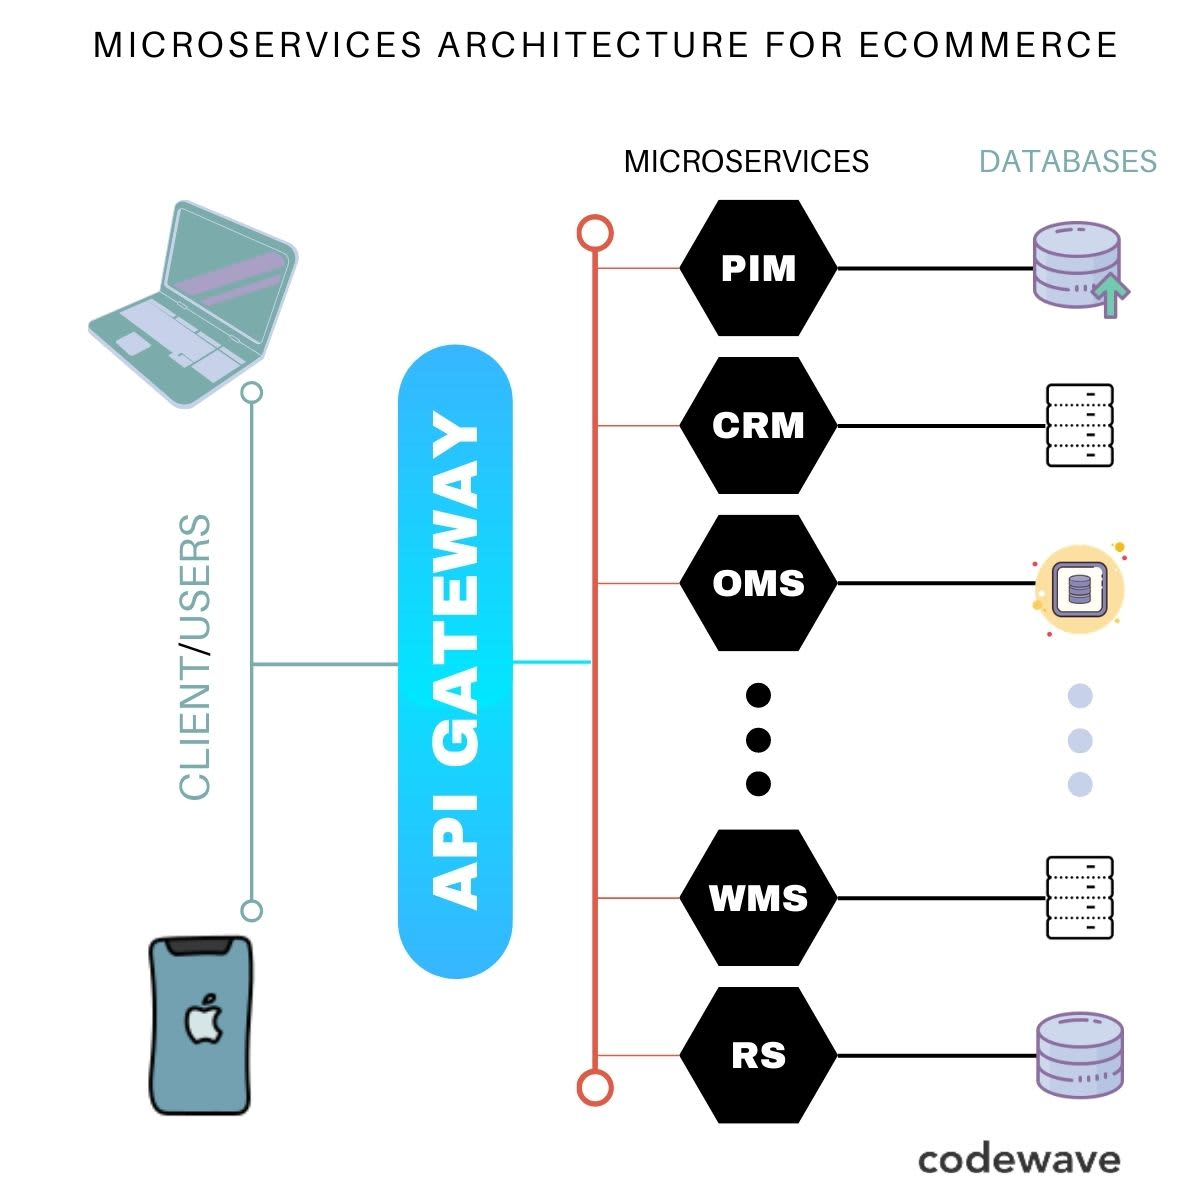 ecommerce microservices architecture